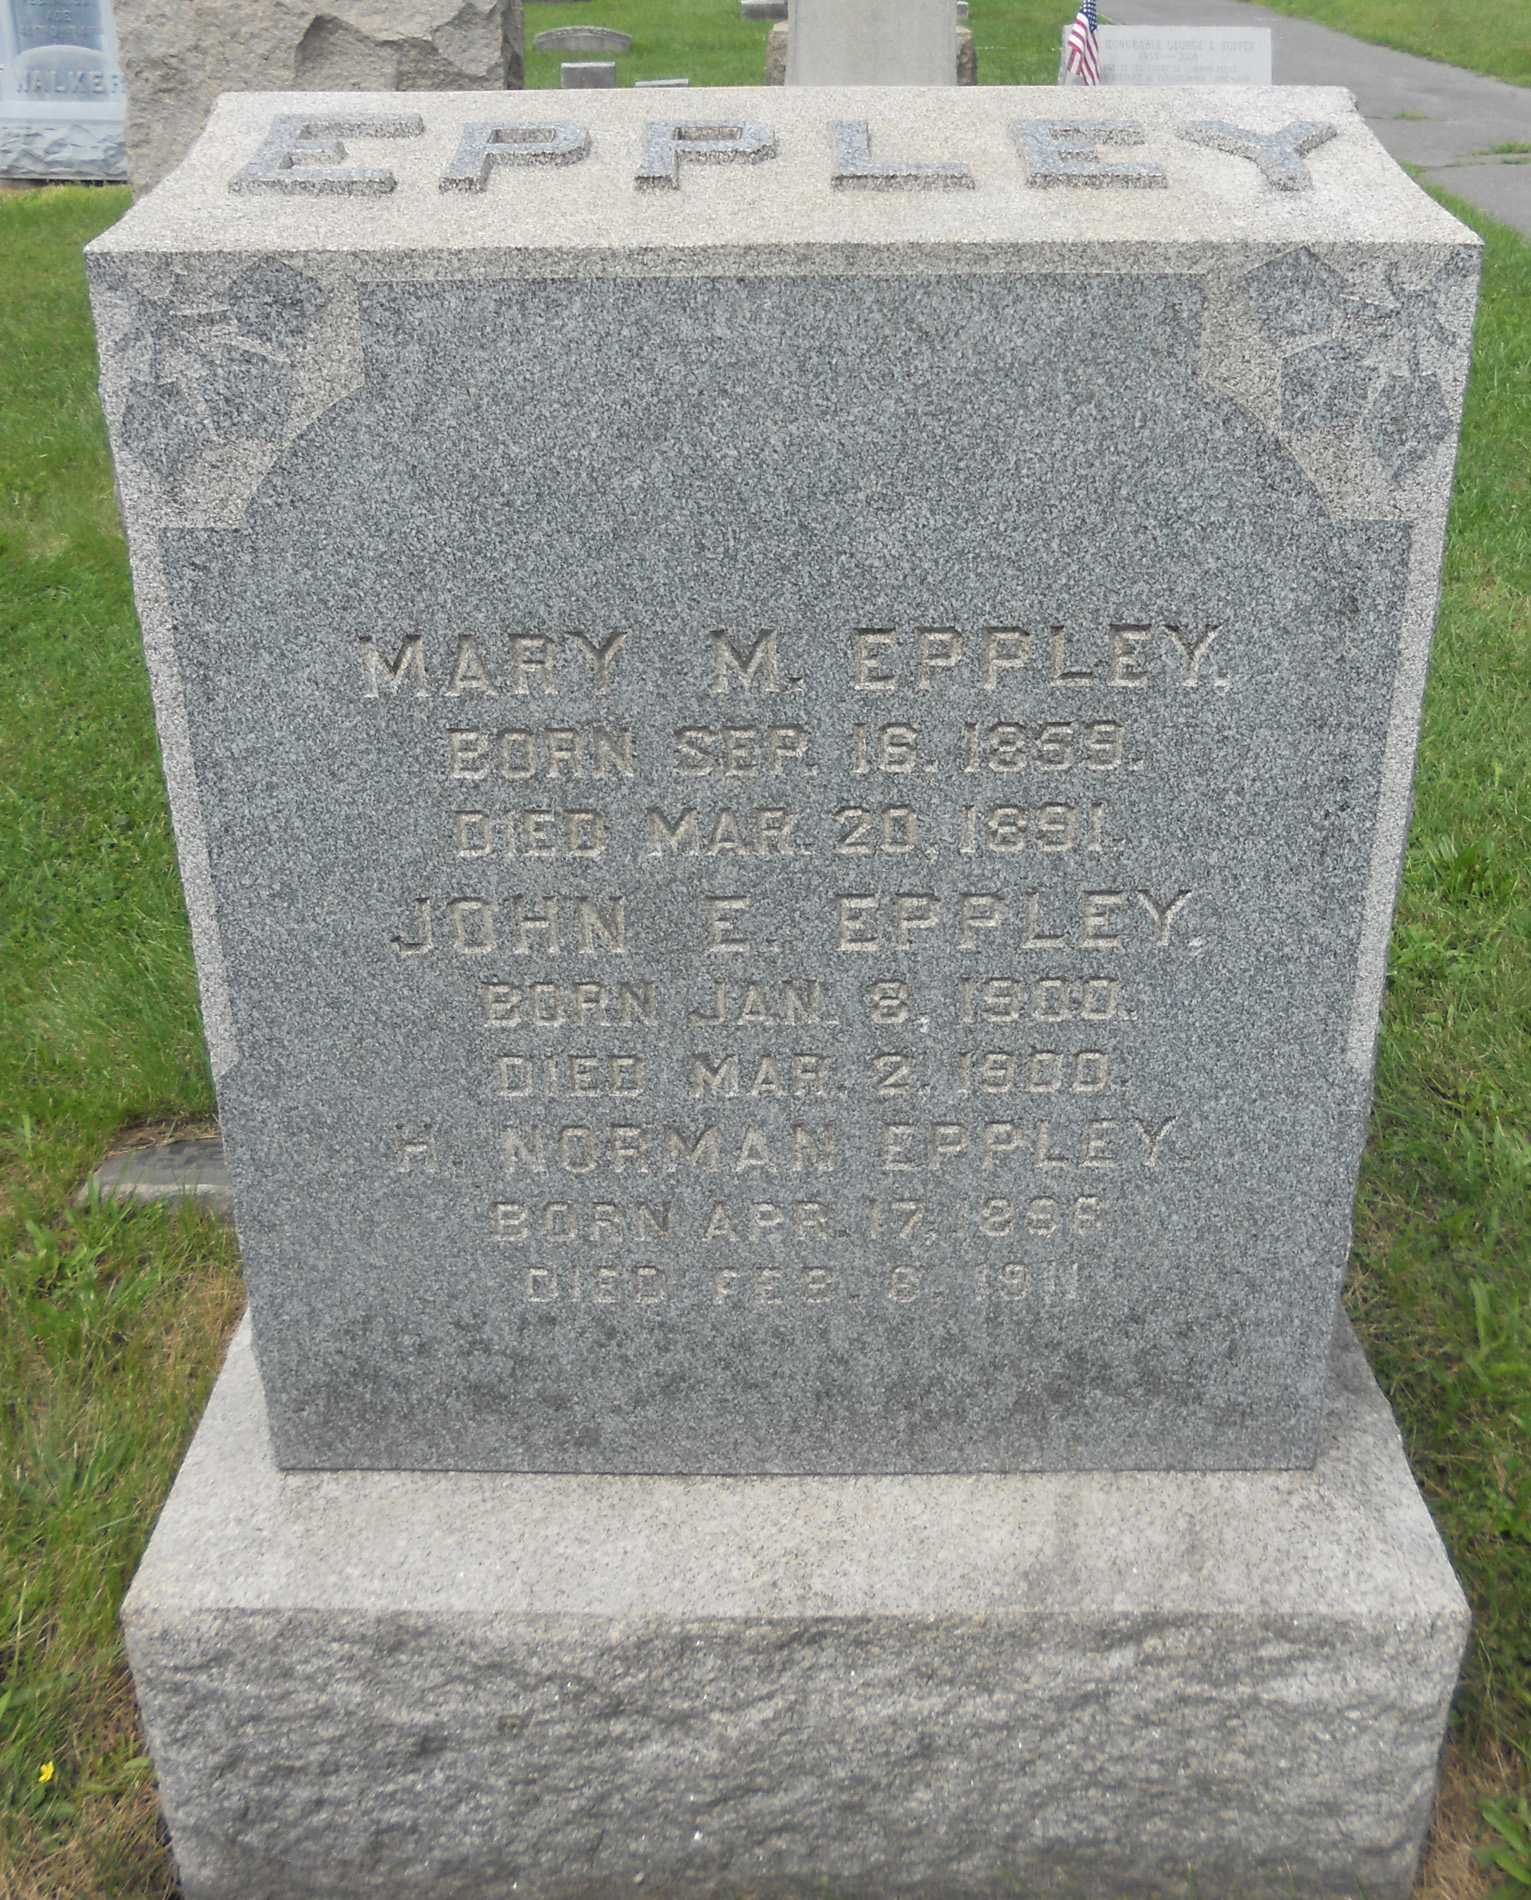 Harry Norman Norman Eppley